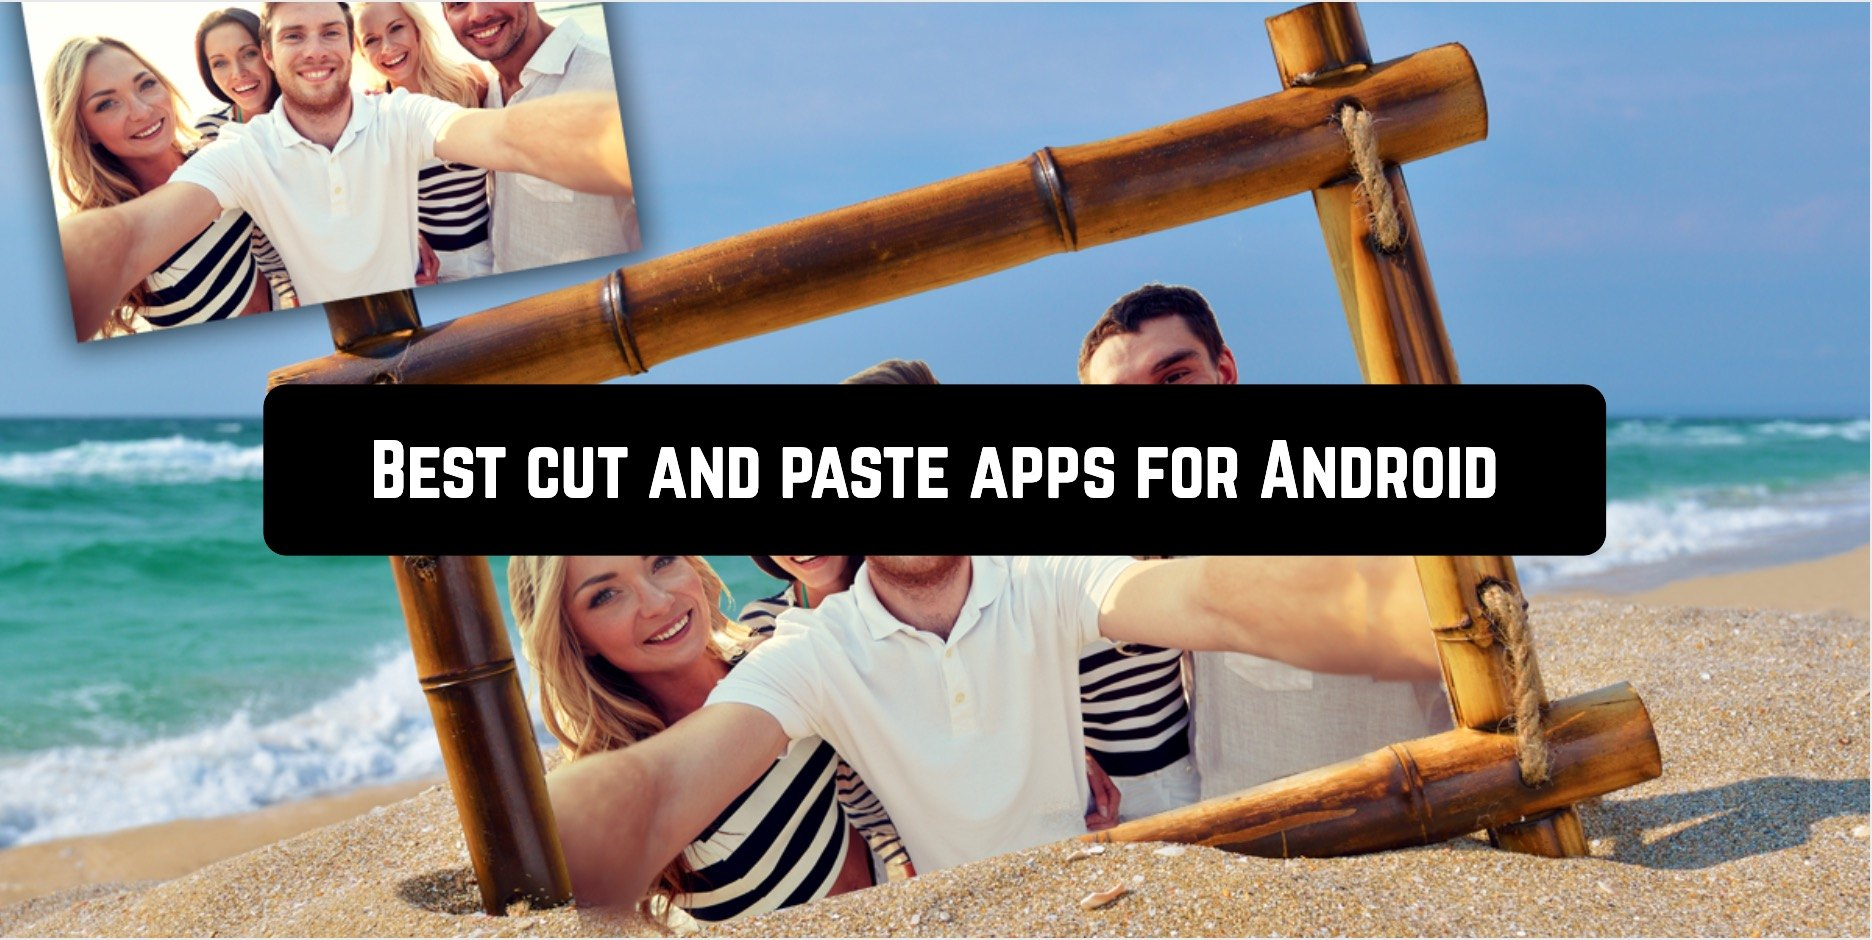 Best cut and paste apps for Android